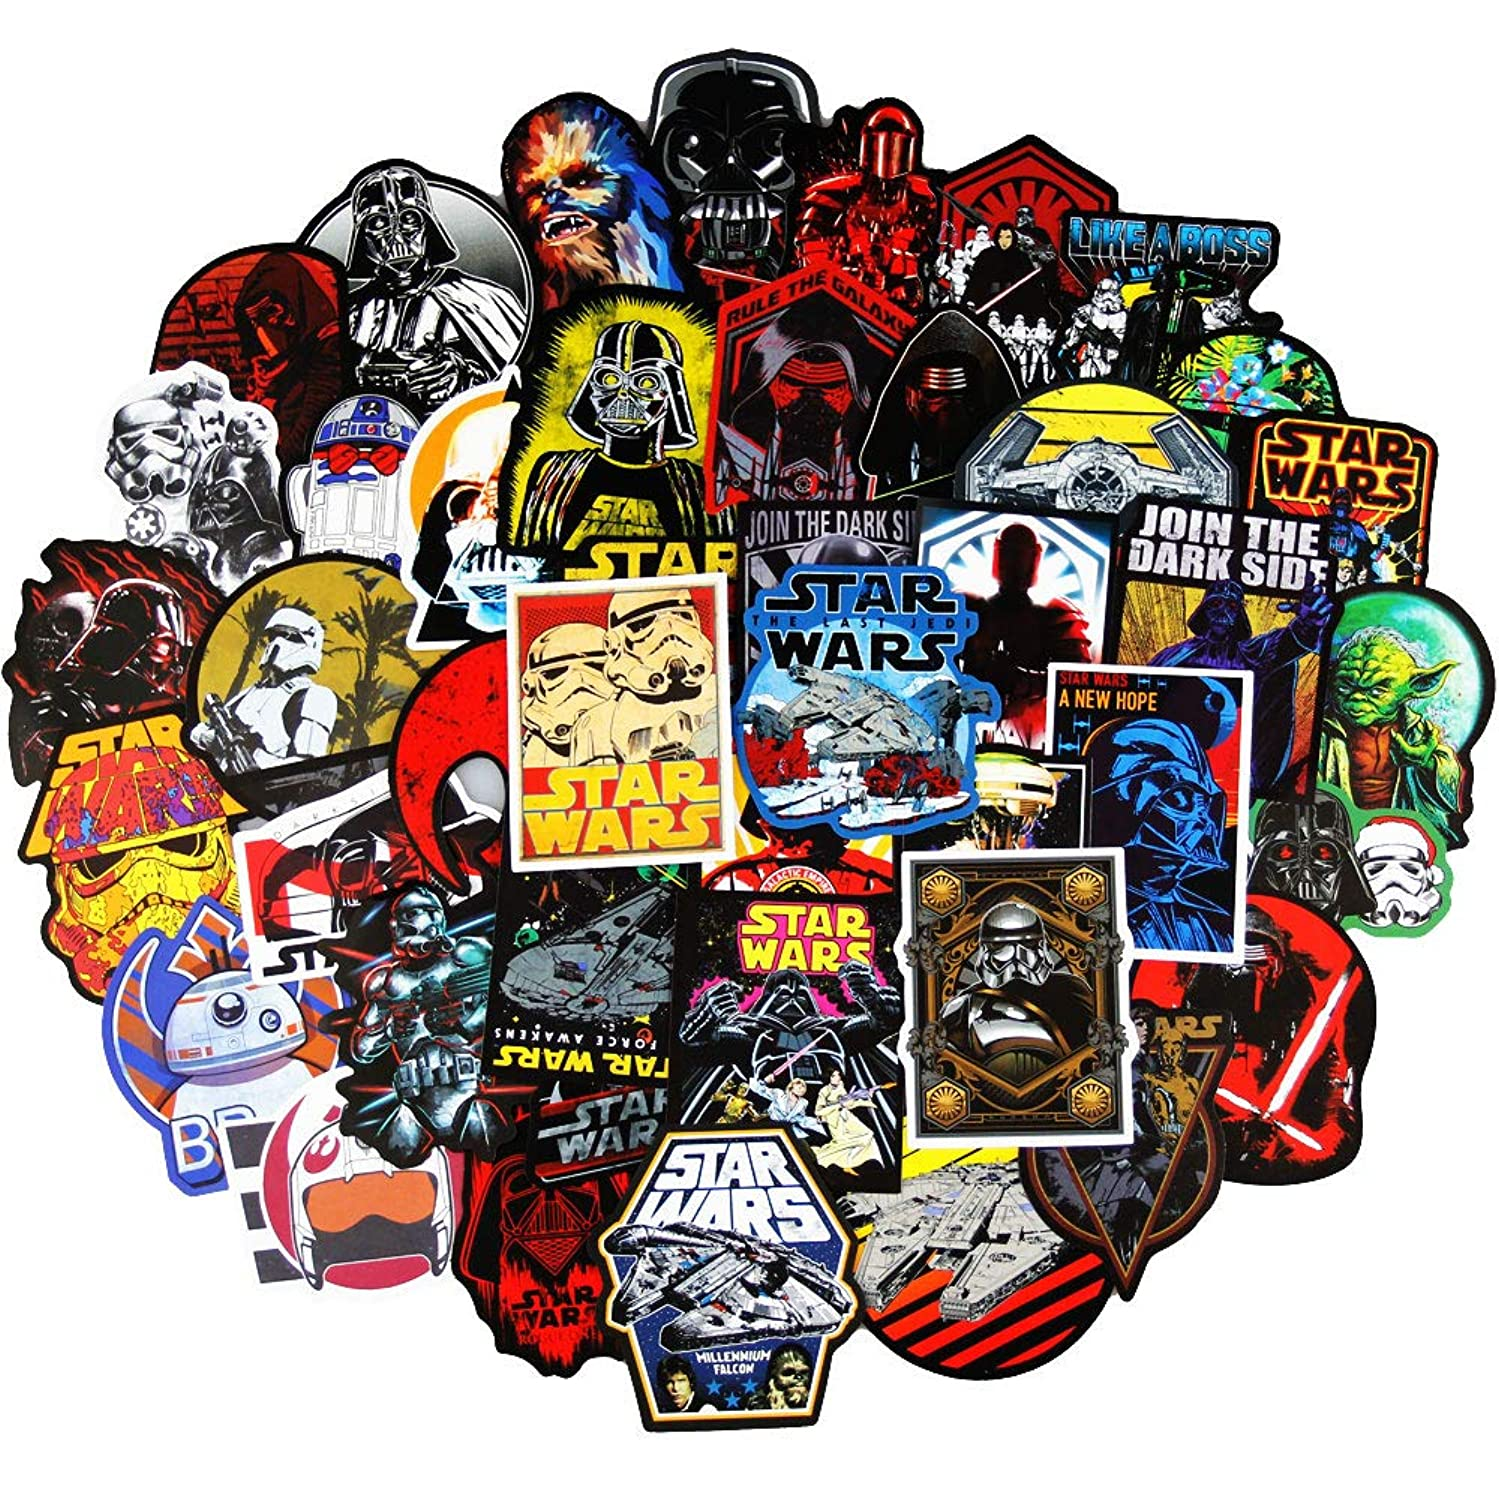 Jedi Knight Stickers Pack for Star Wars(104Pcs),Cool Movie Decals for Water Bottle Guitar Skateboard Hydro Flask MacBook Computer Car,Party Supplies for Adults,Teens,Boys and Girls